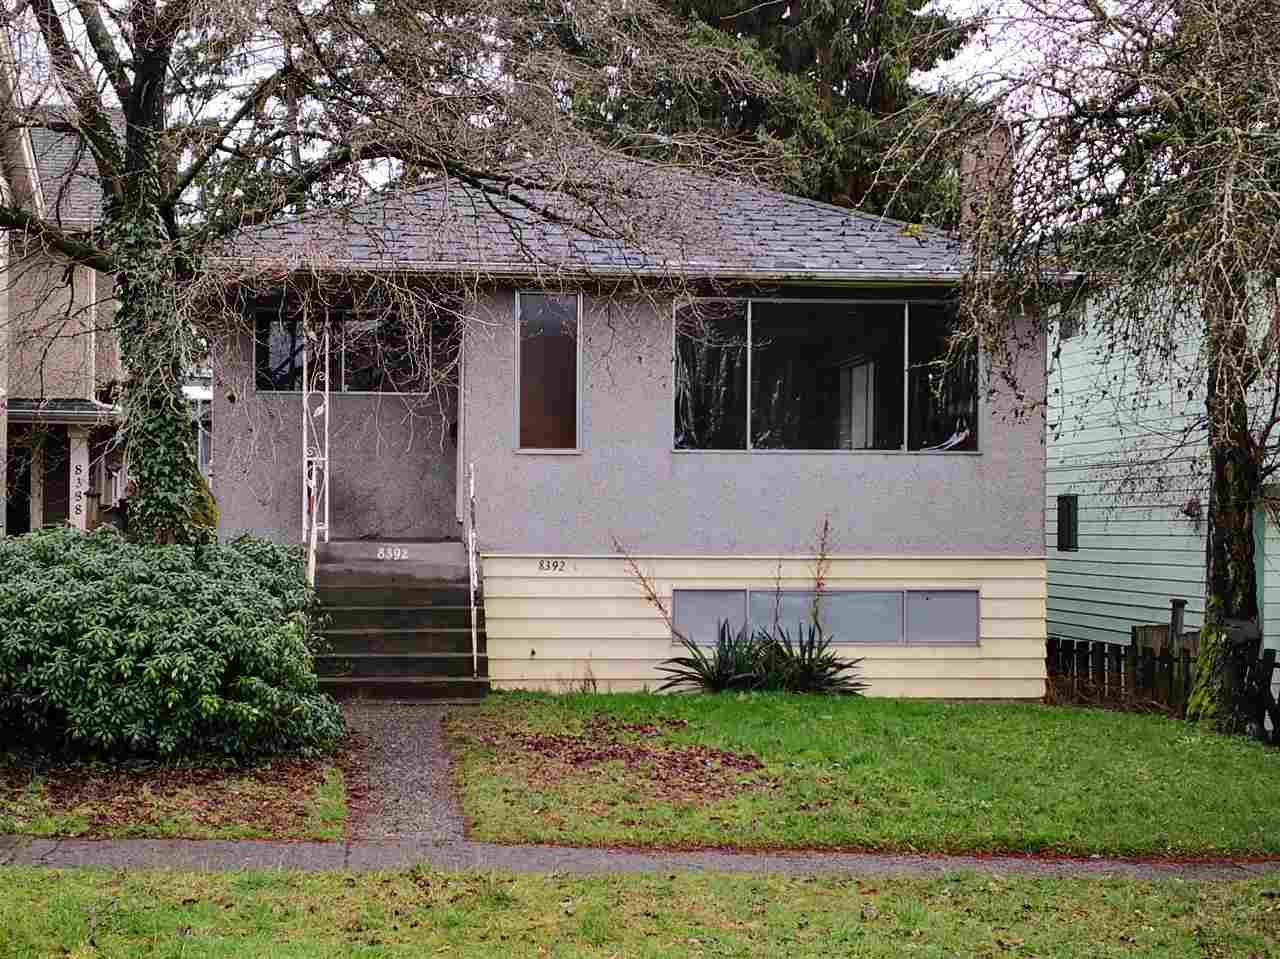 Main Photo: 8392 SHAUGHNESSY Street in Vancouver: Marpole House for sale (Vancouver West)  : MLS®# R2330863